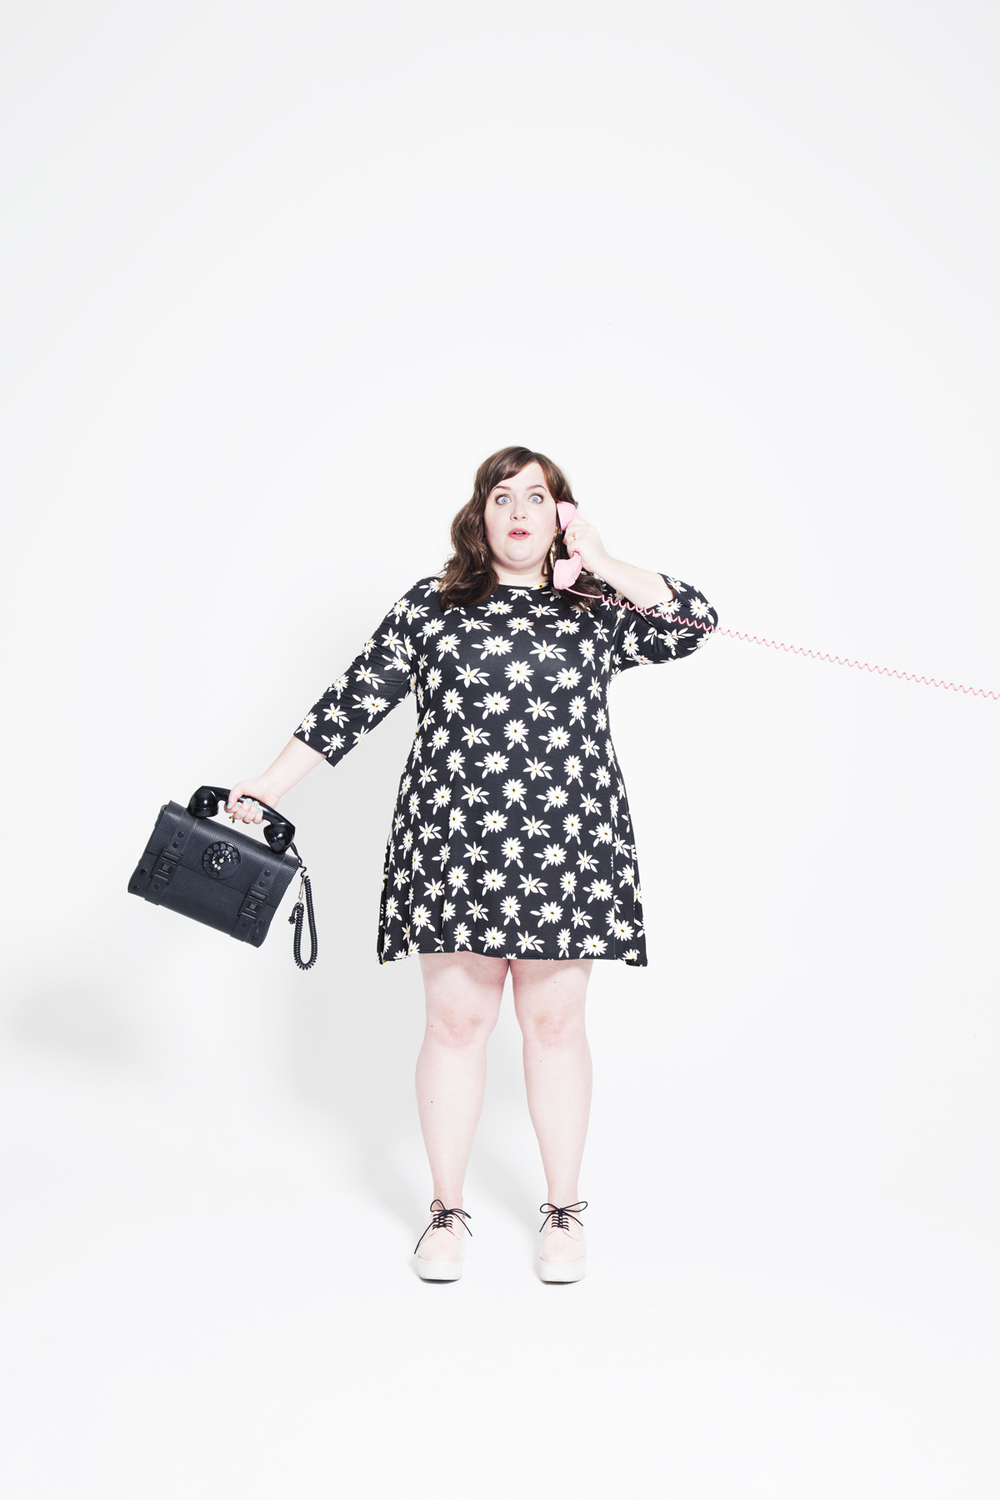 Aidy bryant for Paper Magazine photographed by Kate Owen photographer